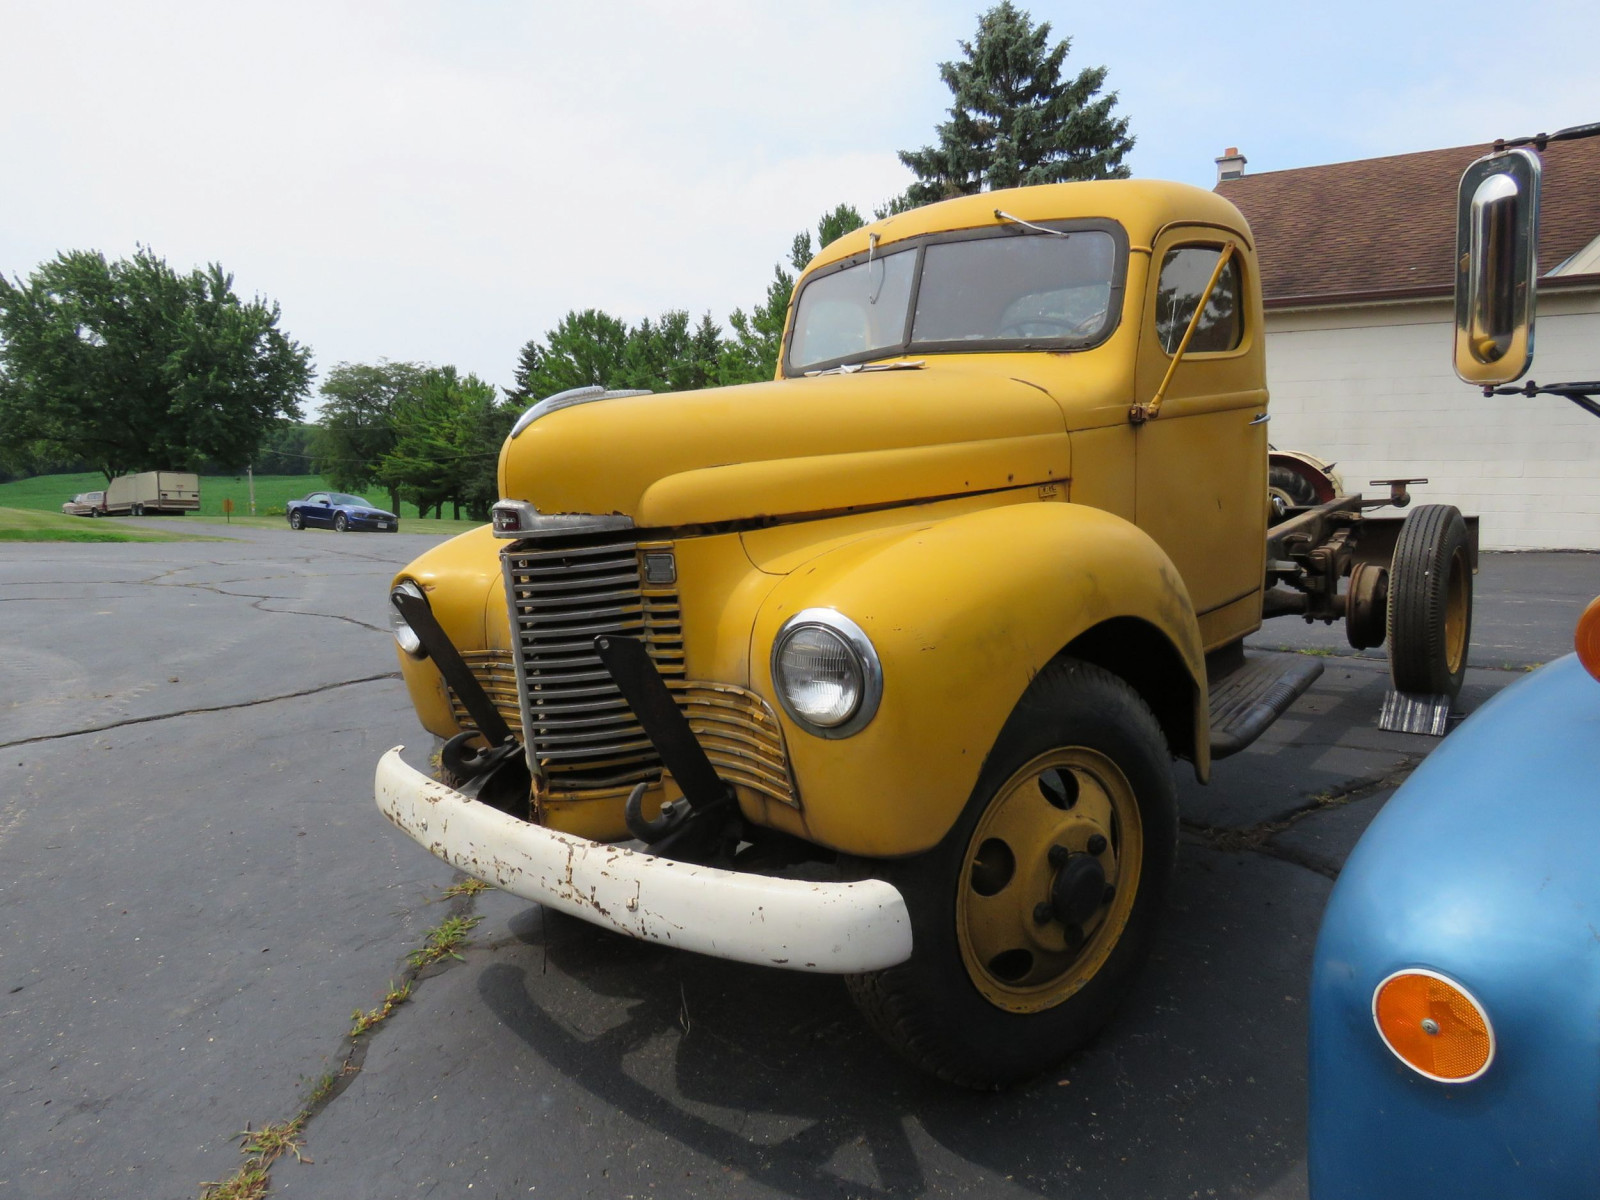 1941 International KB5 Truck - Image 2